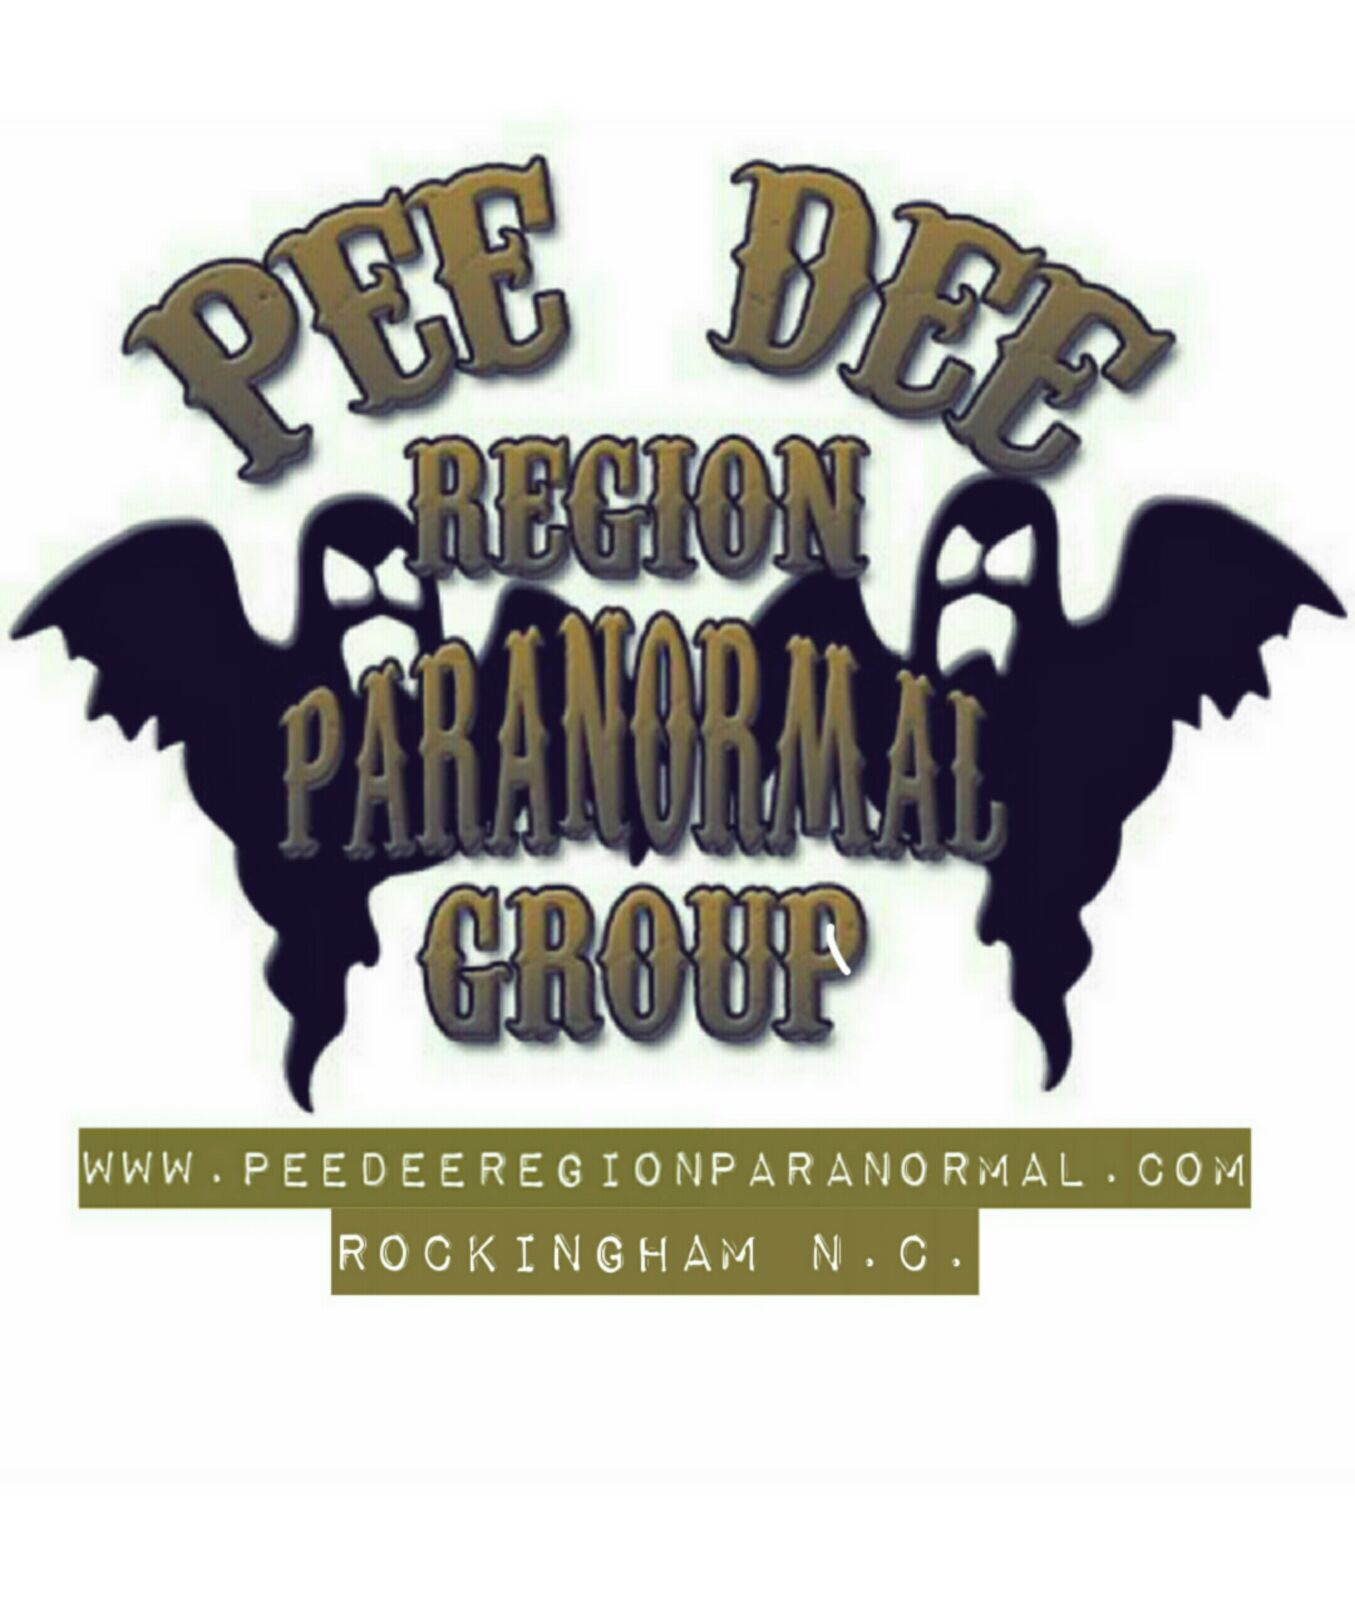 Pdrp Home Pee Dee Region Paranormal